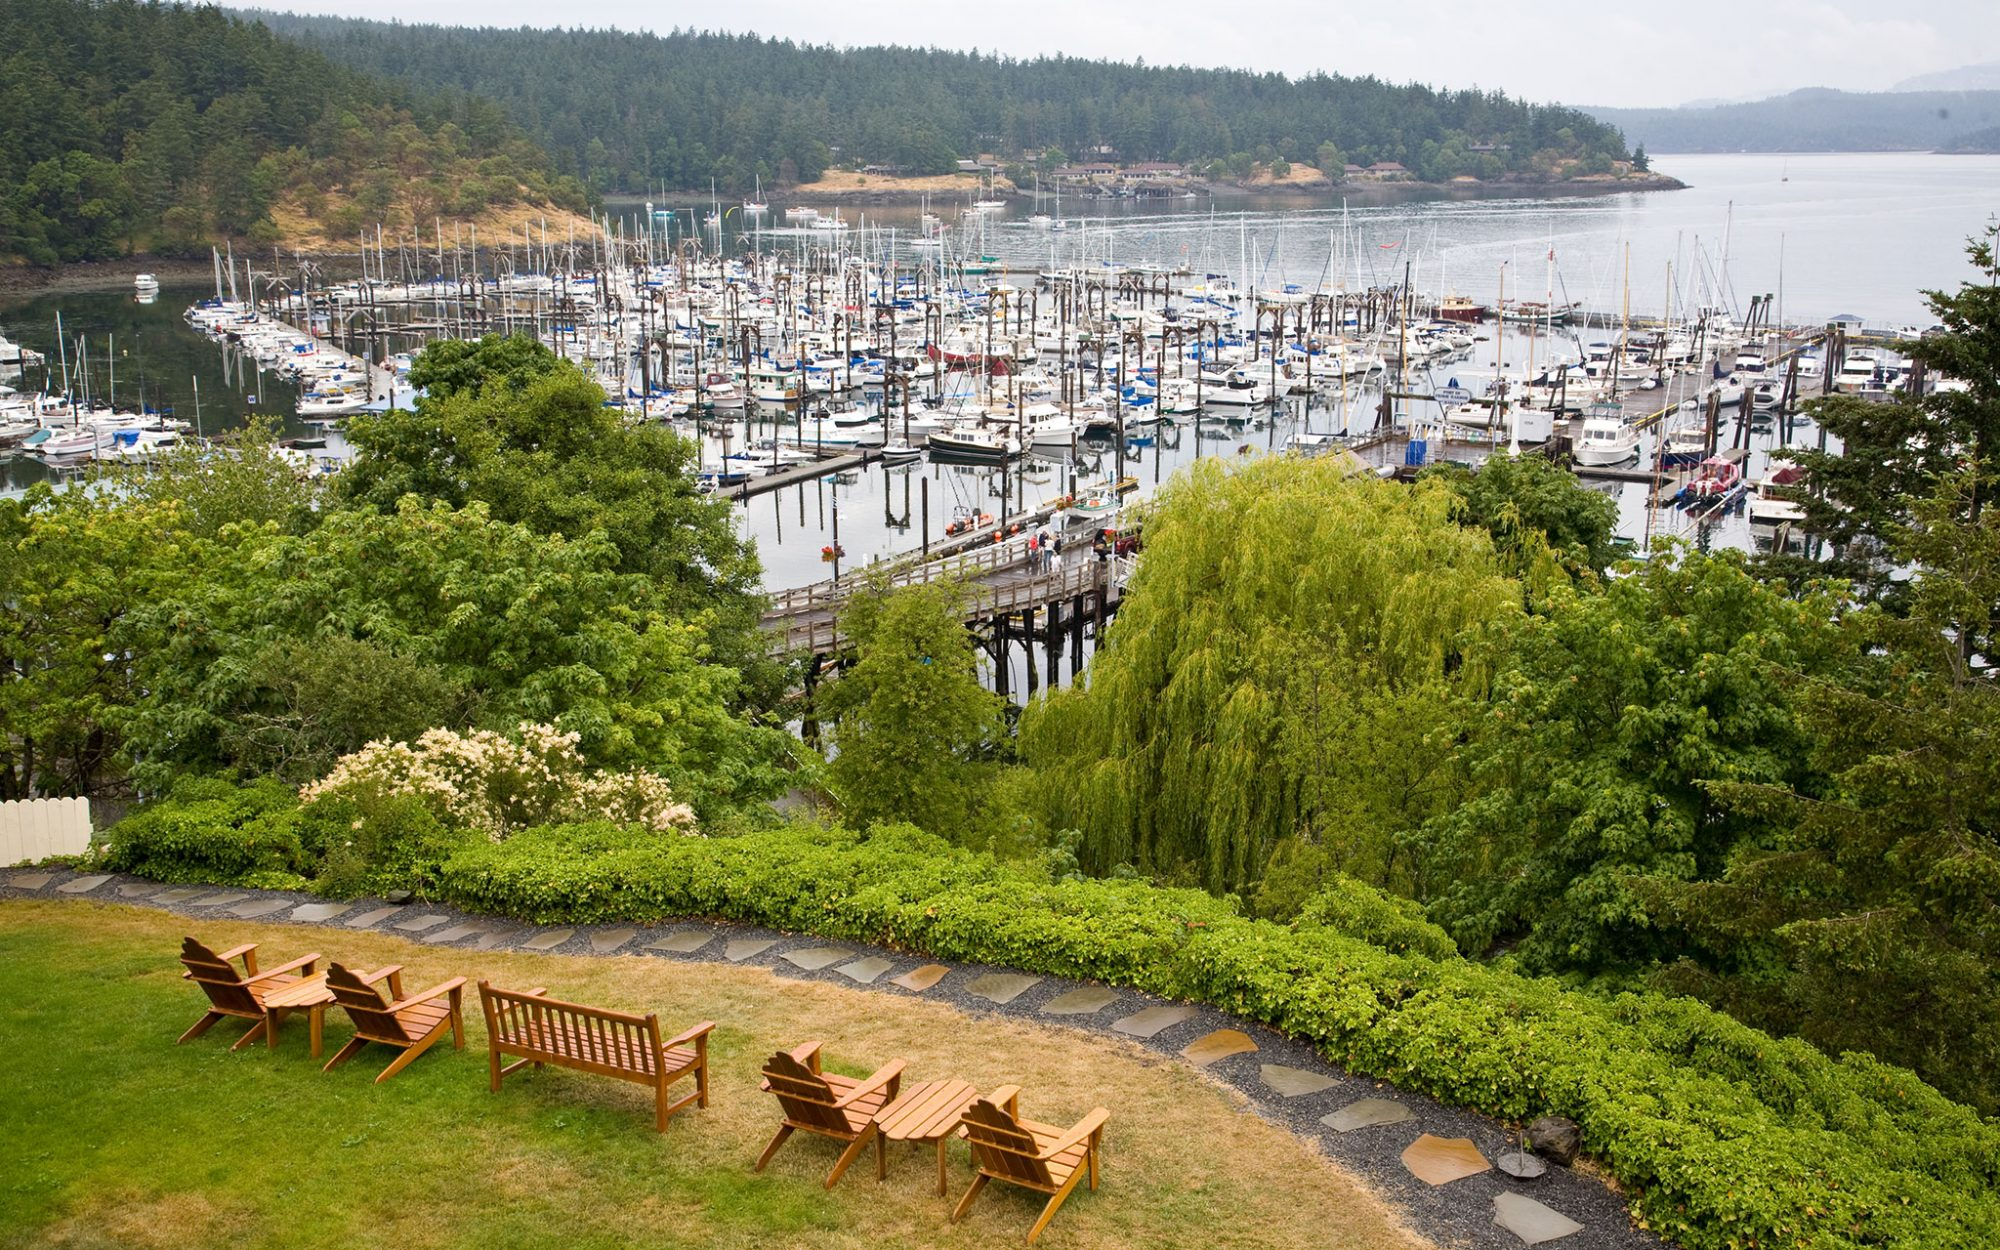 America's Best Little Beach Towns: San Juan Island